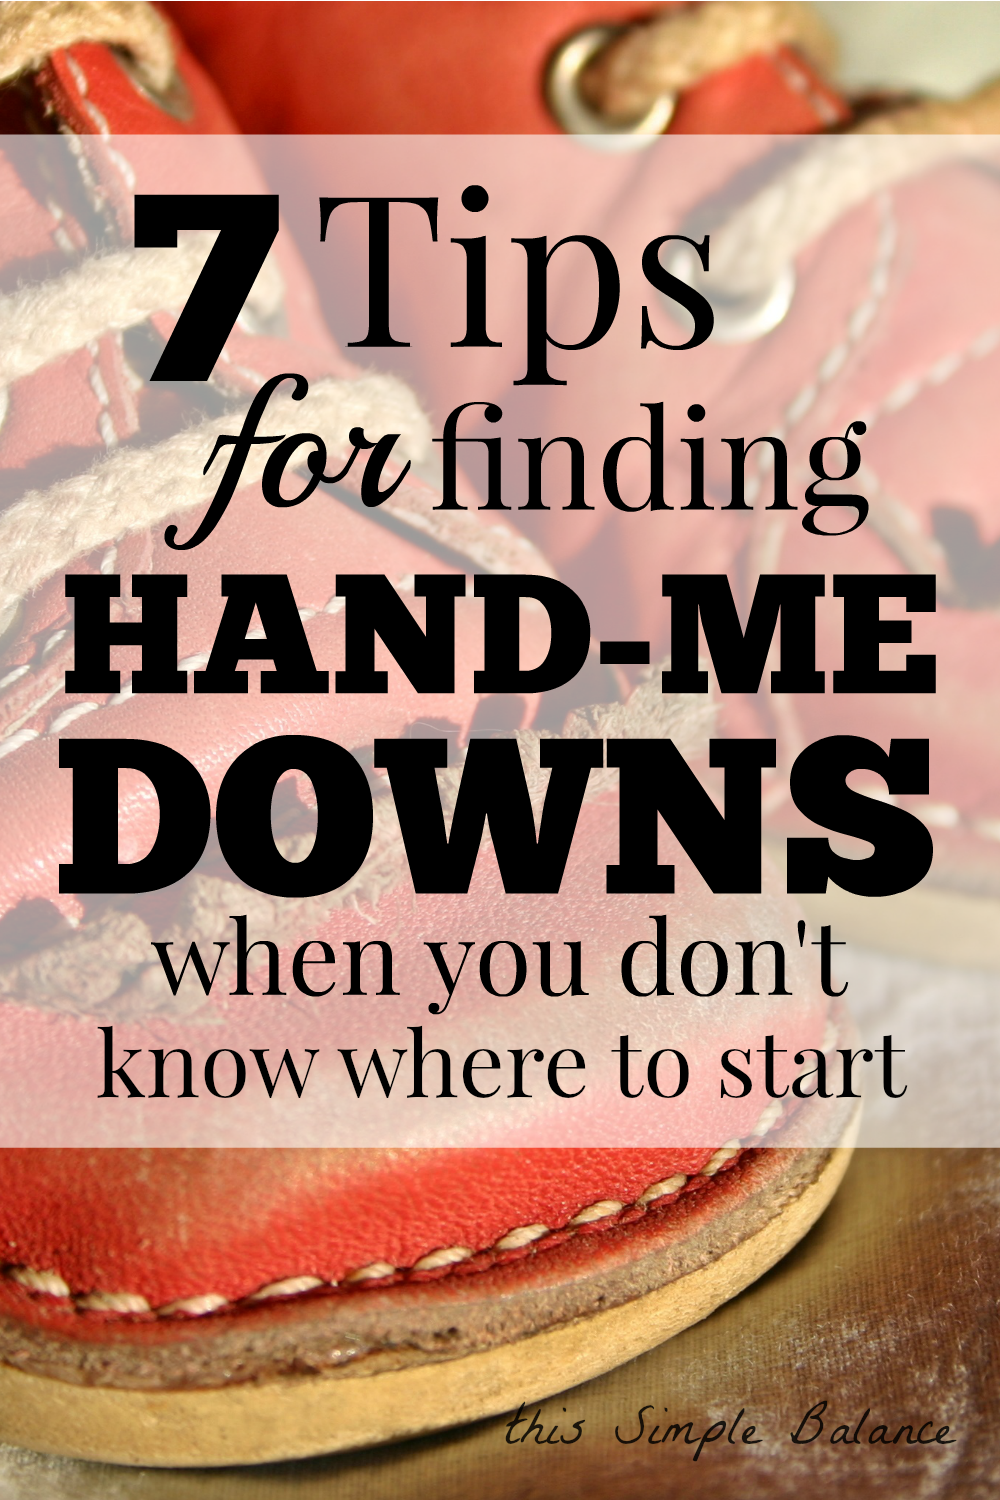 hand-me-downs, sources for hand-me-downs, how to find hand-me-downs